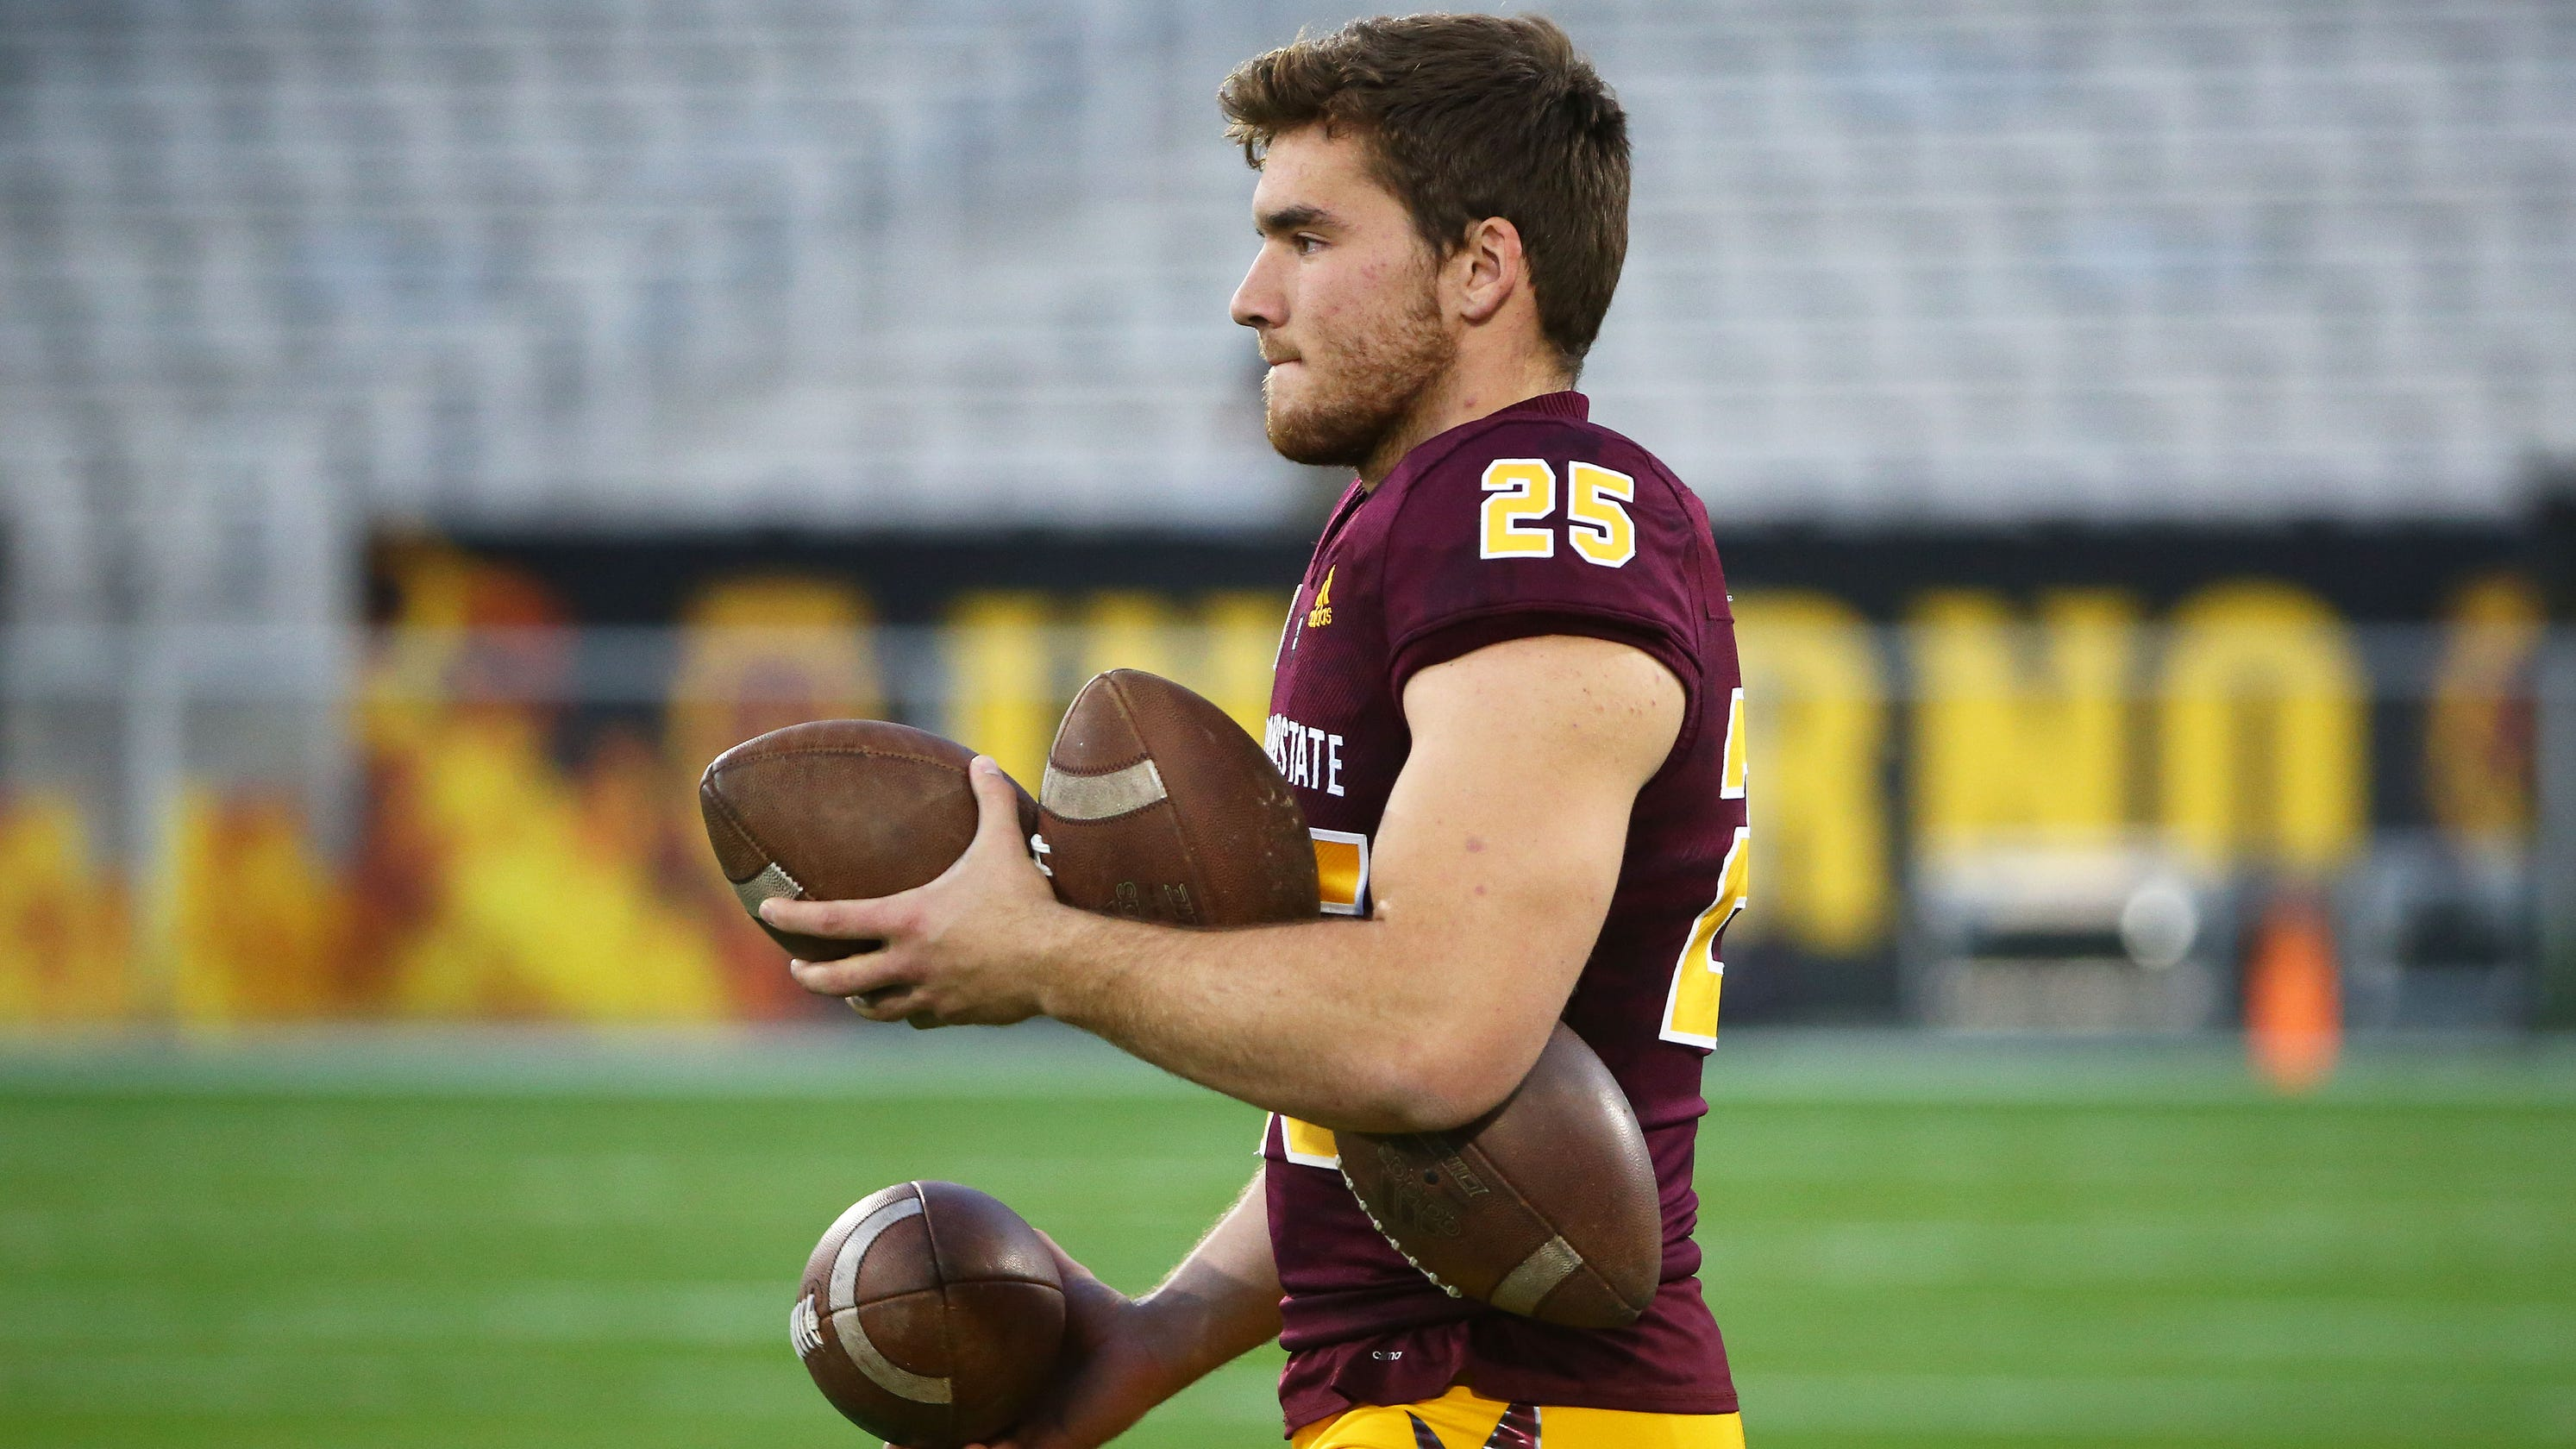 Asu Defense Loses Shutout But Benefits From New Punting Star